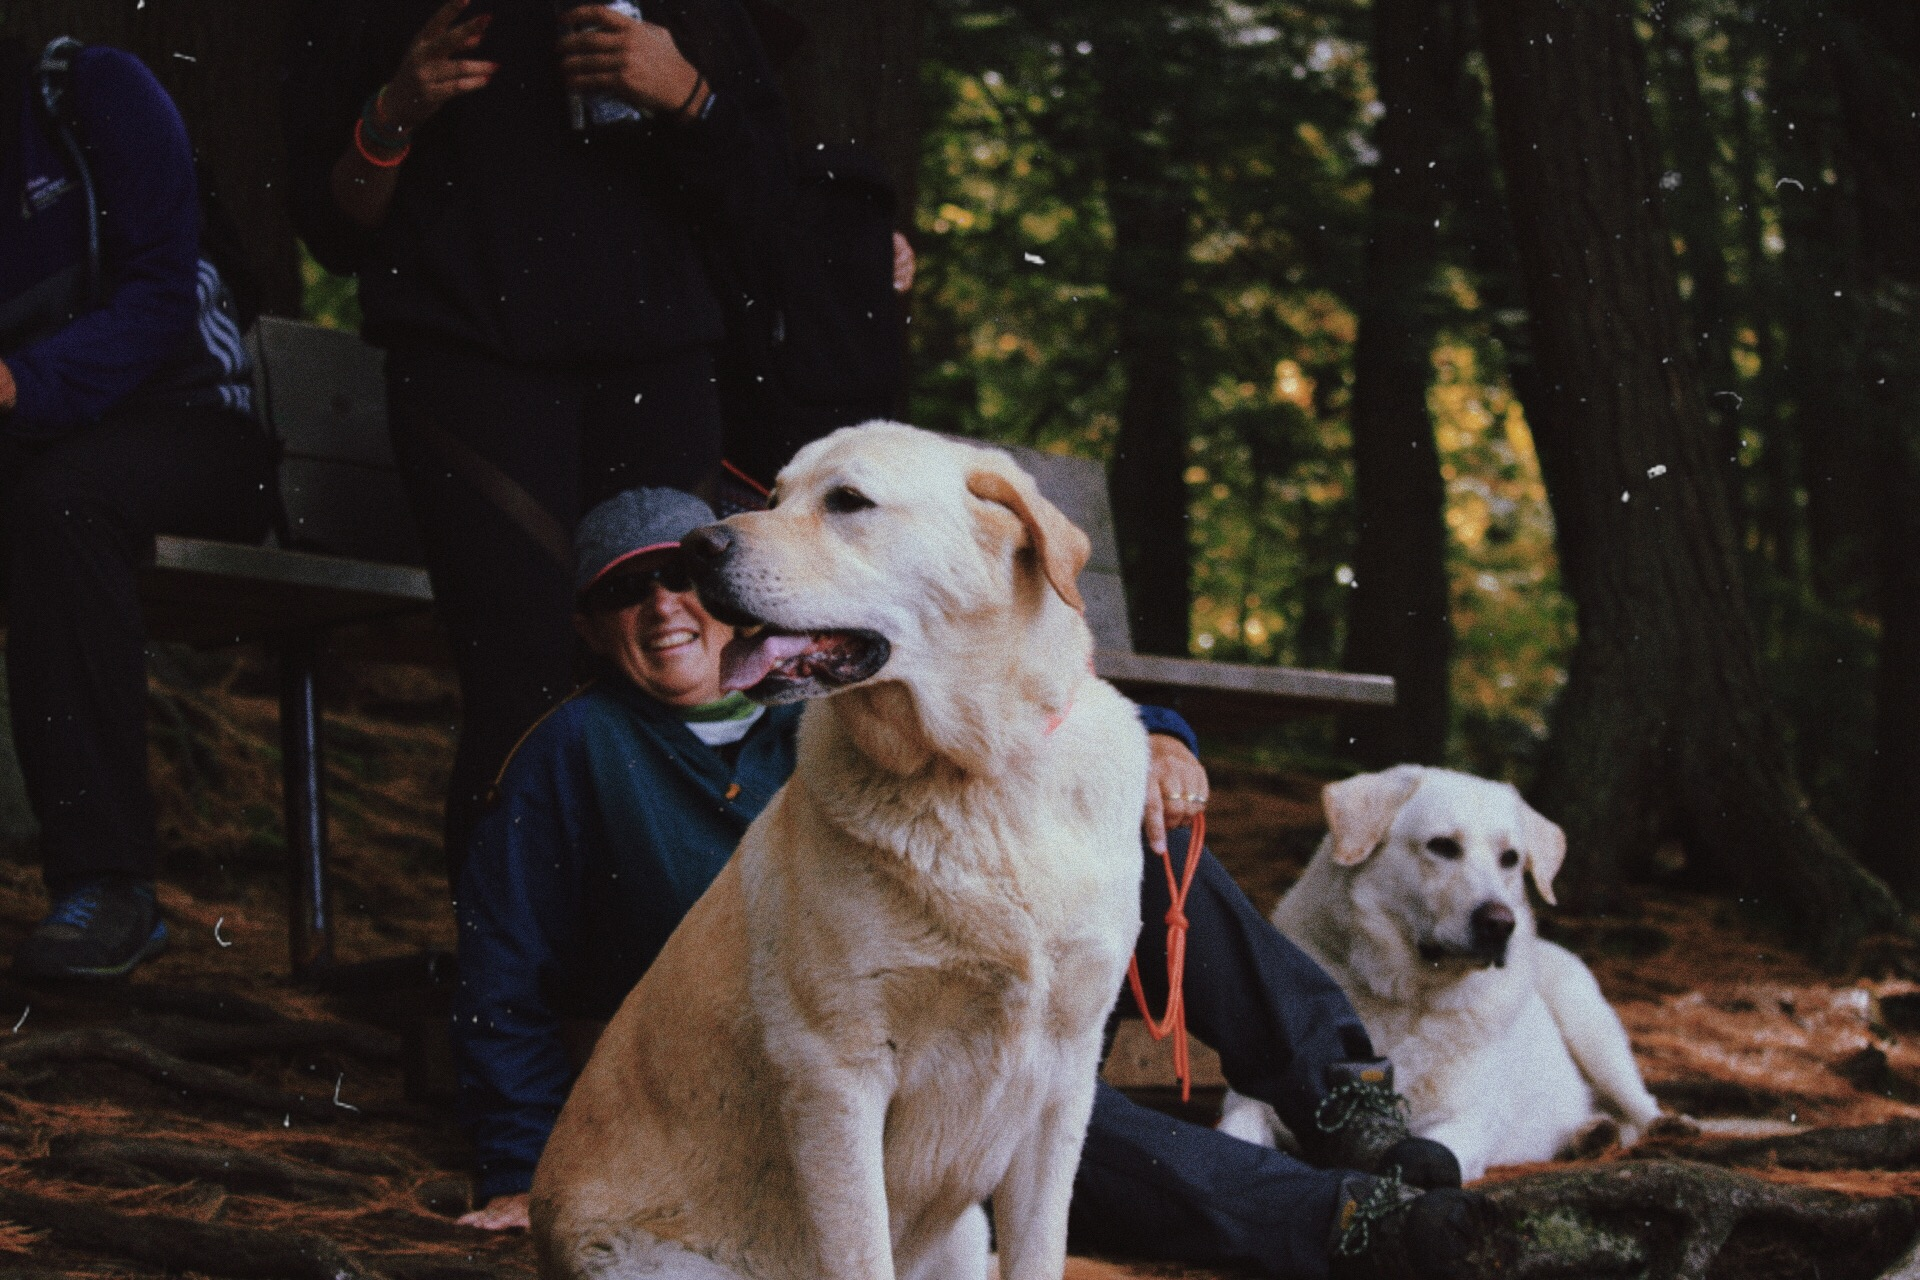 Trent Outdoors Makes Furry Friends on Algonquin Hiking Trip